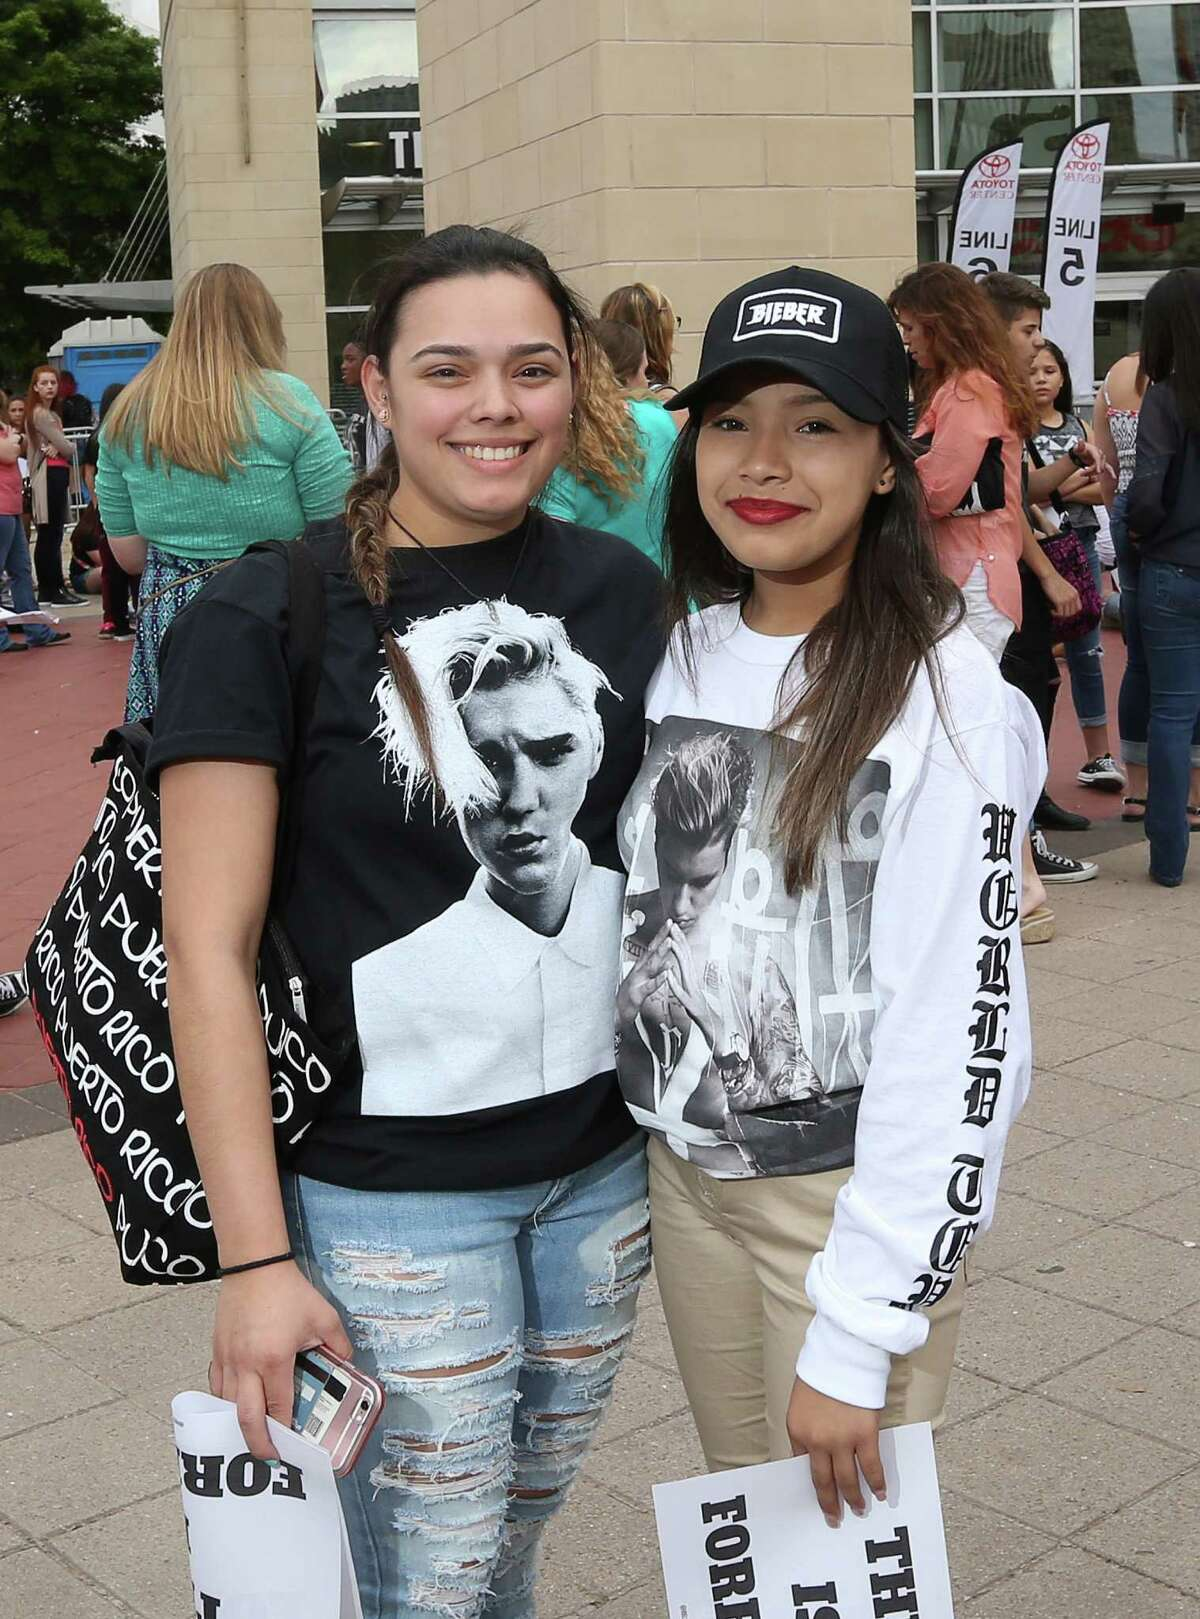 People pose for a photo before the Justin Bieber concert at the Toyota Center Saturday, April 9, 2016, in Houston.